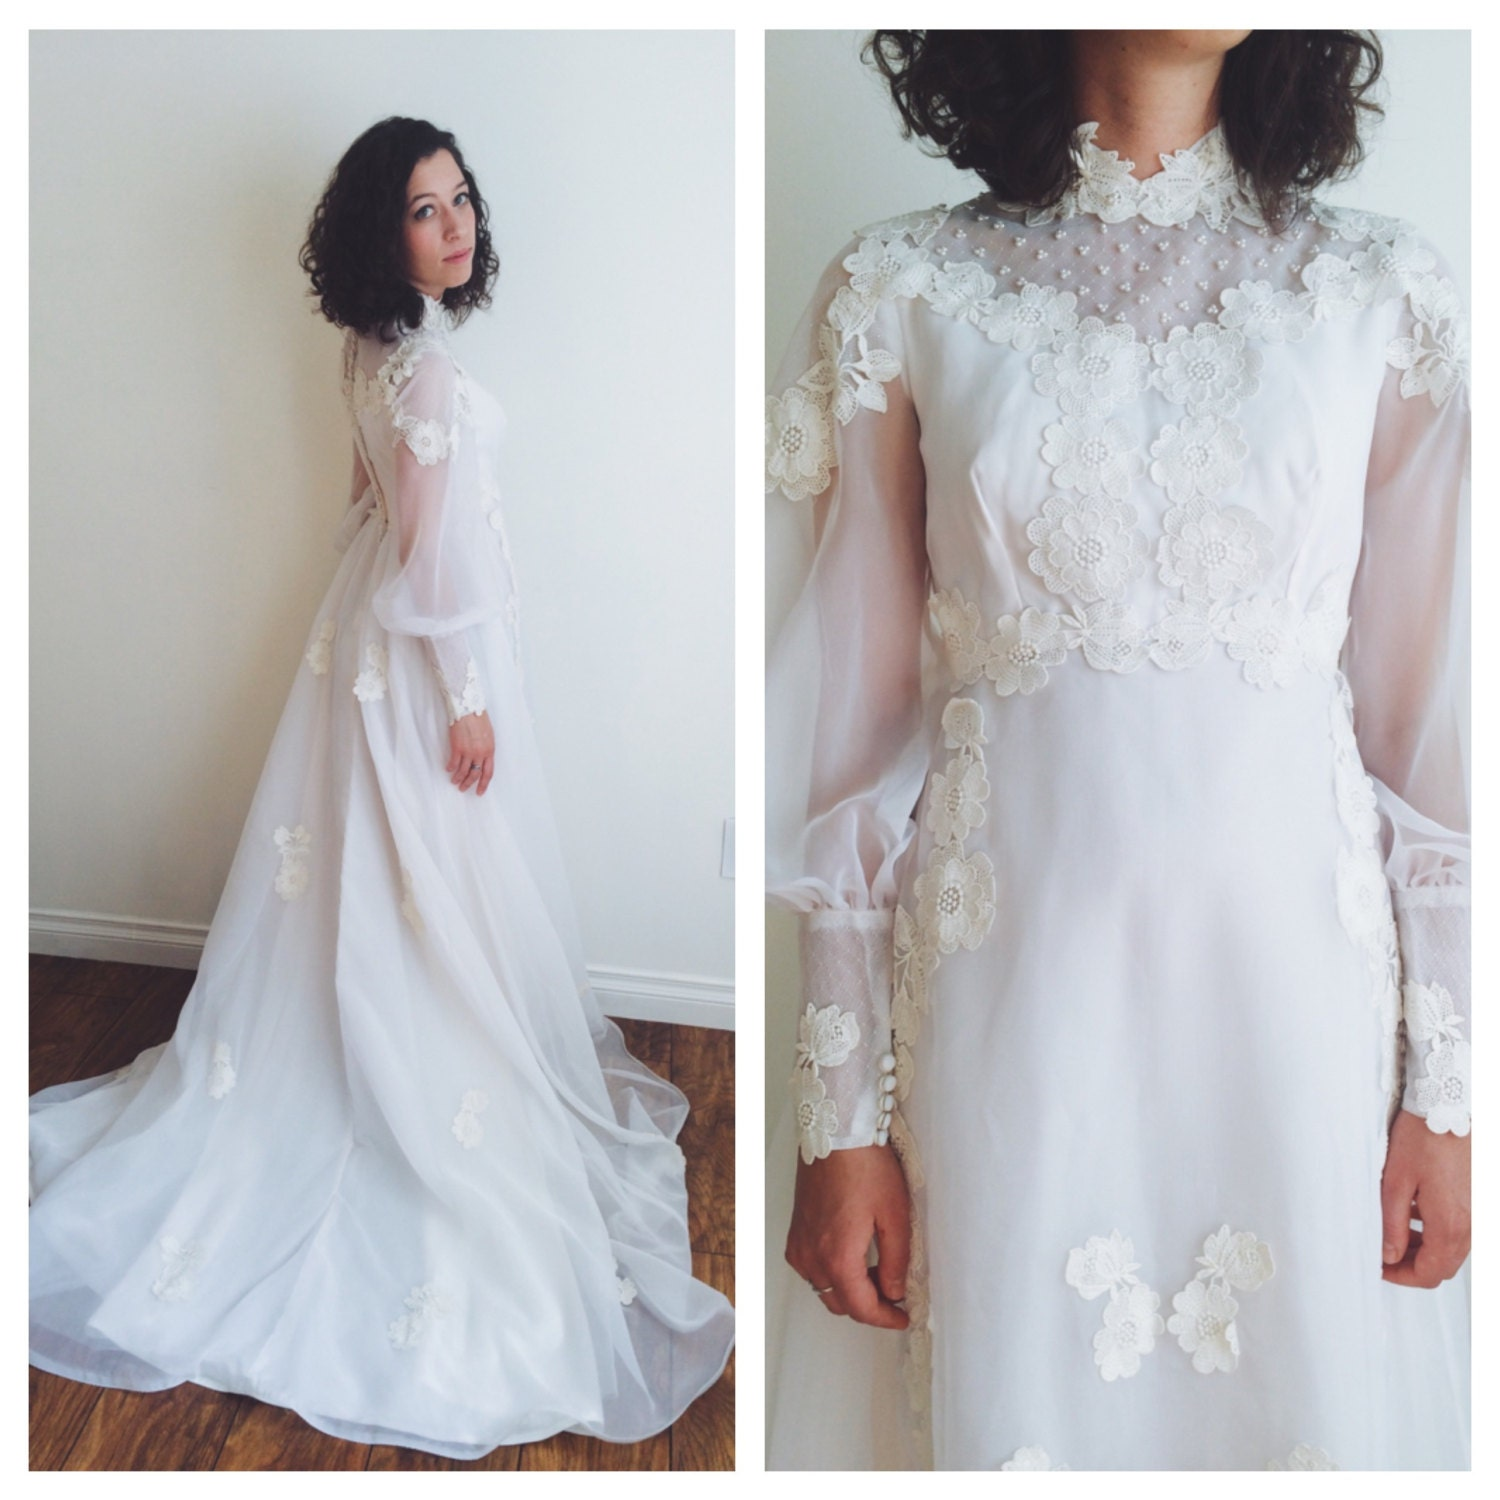 1960s Vintage Wedding Dress with Applique Flowers Size Small